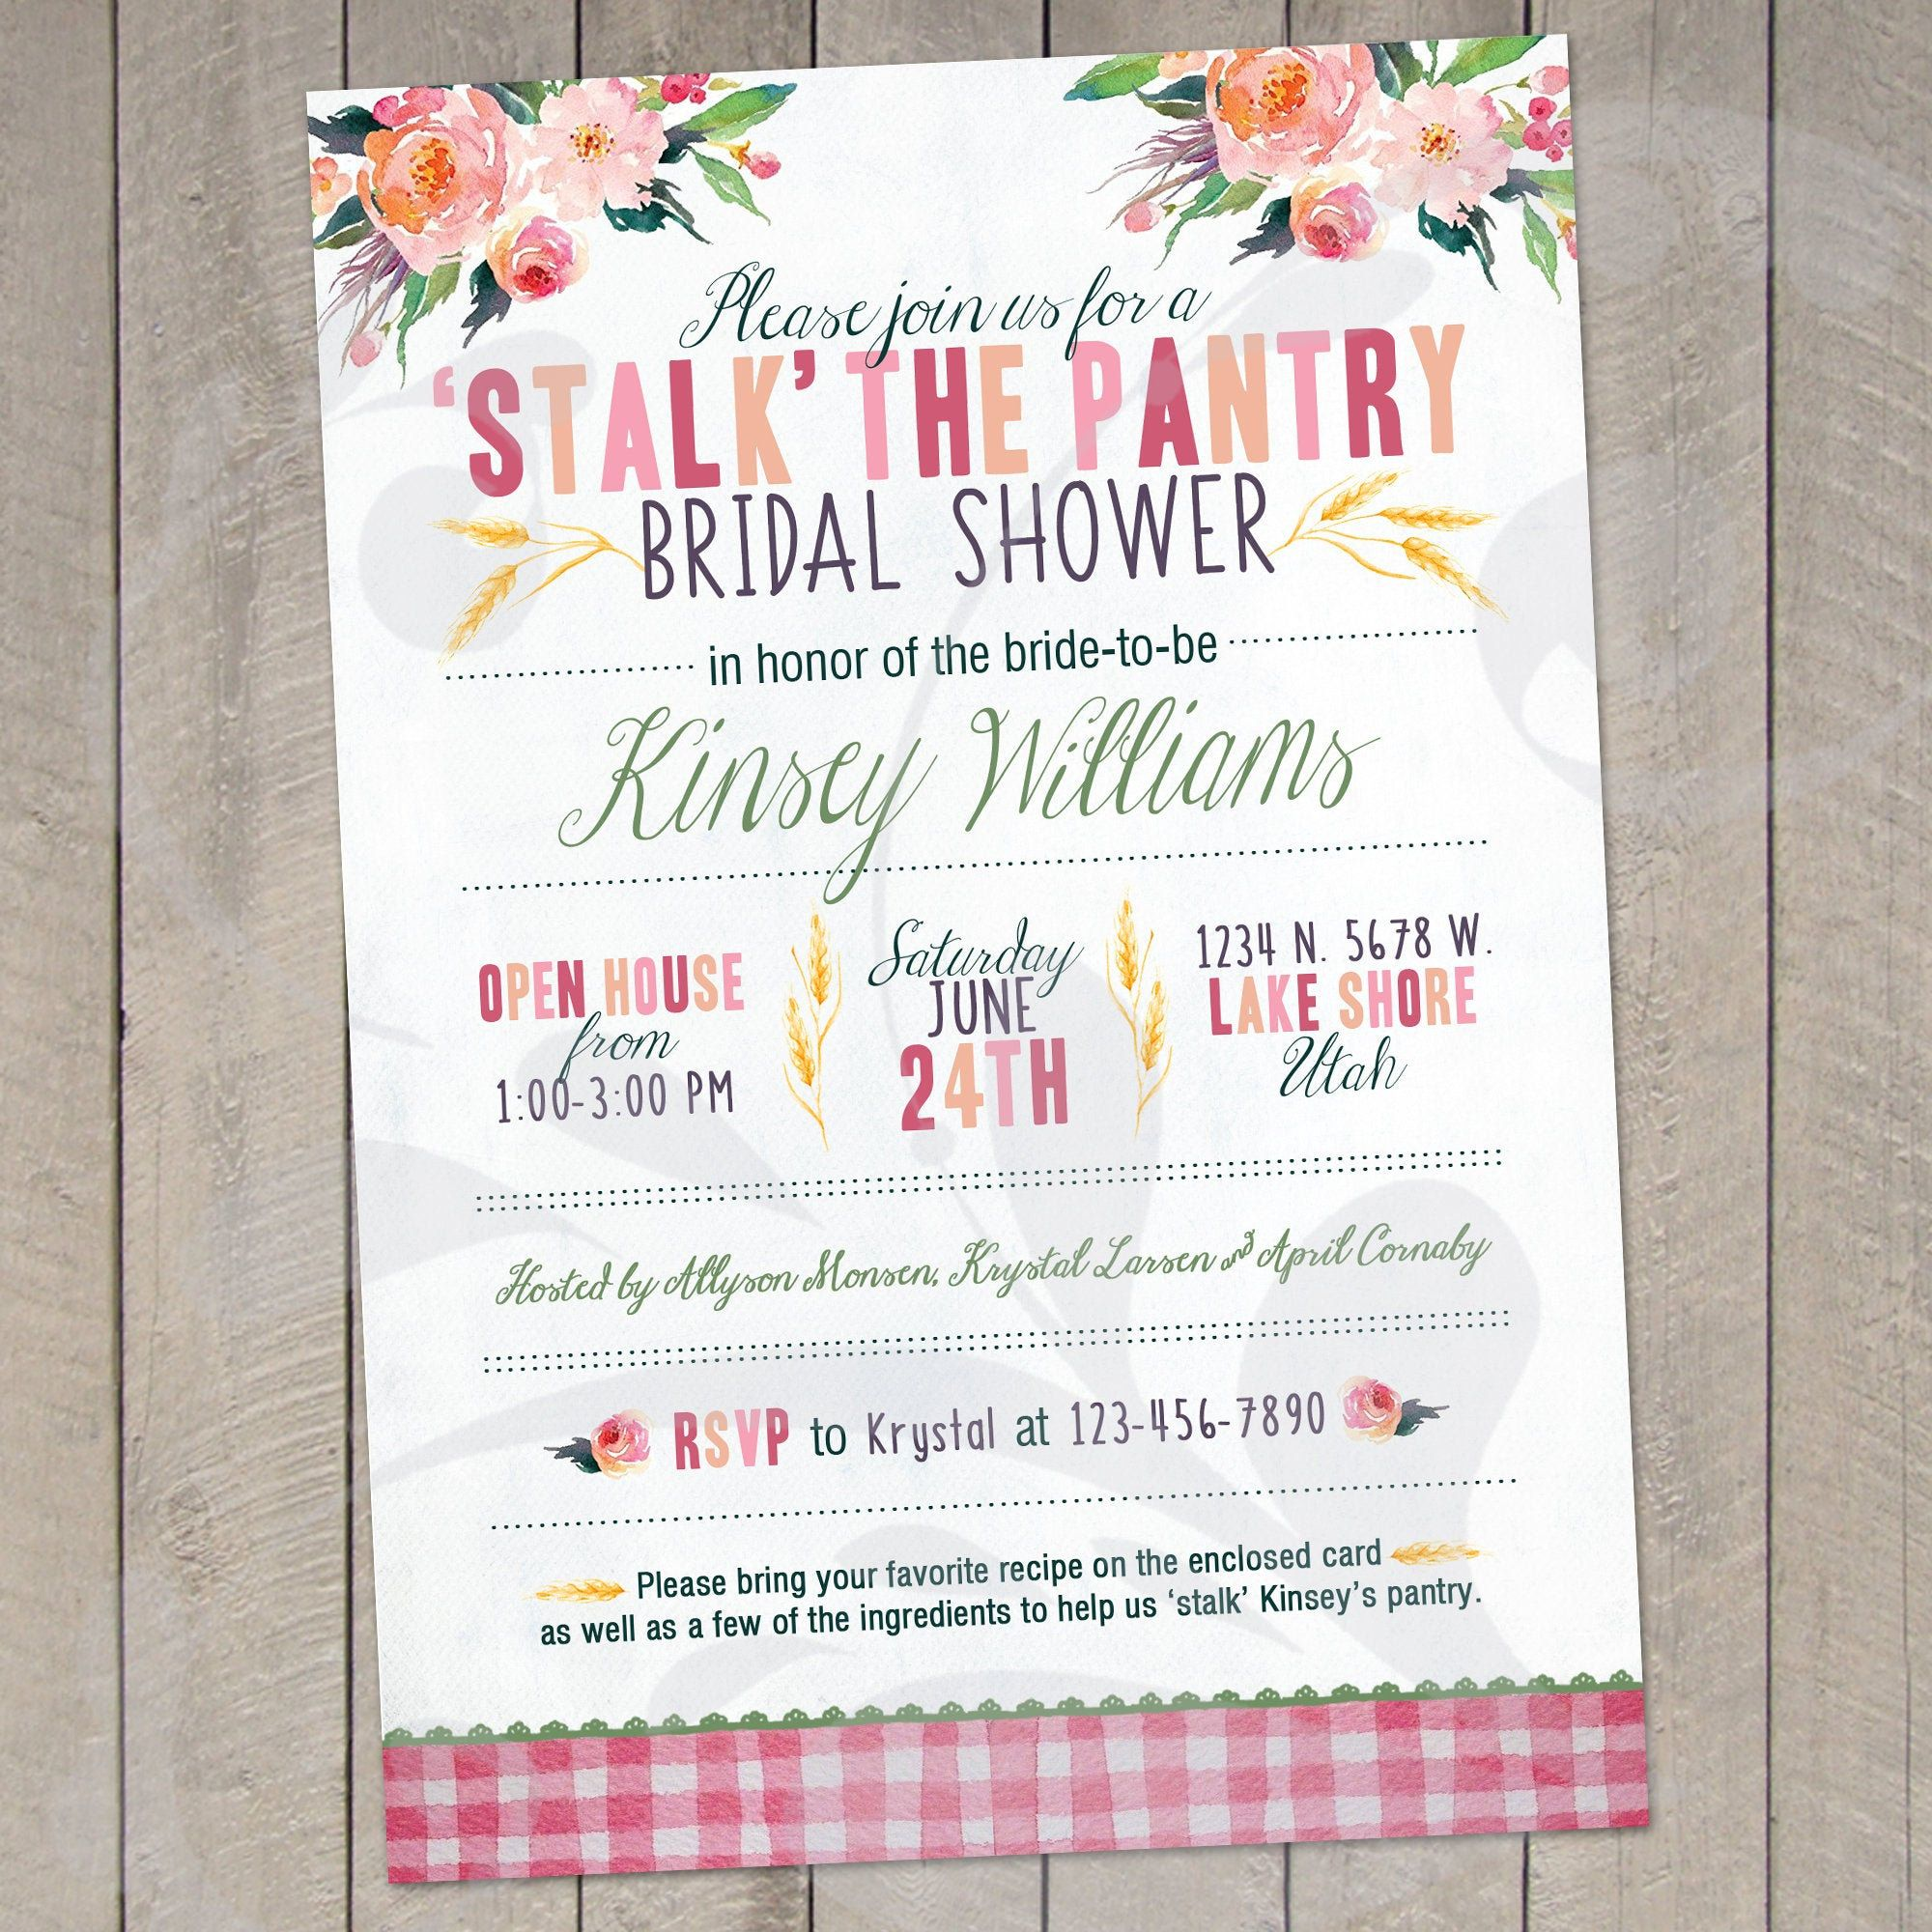 Stalk The Pantry Bridal Shower Invitation Recipe Card Shower